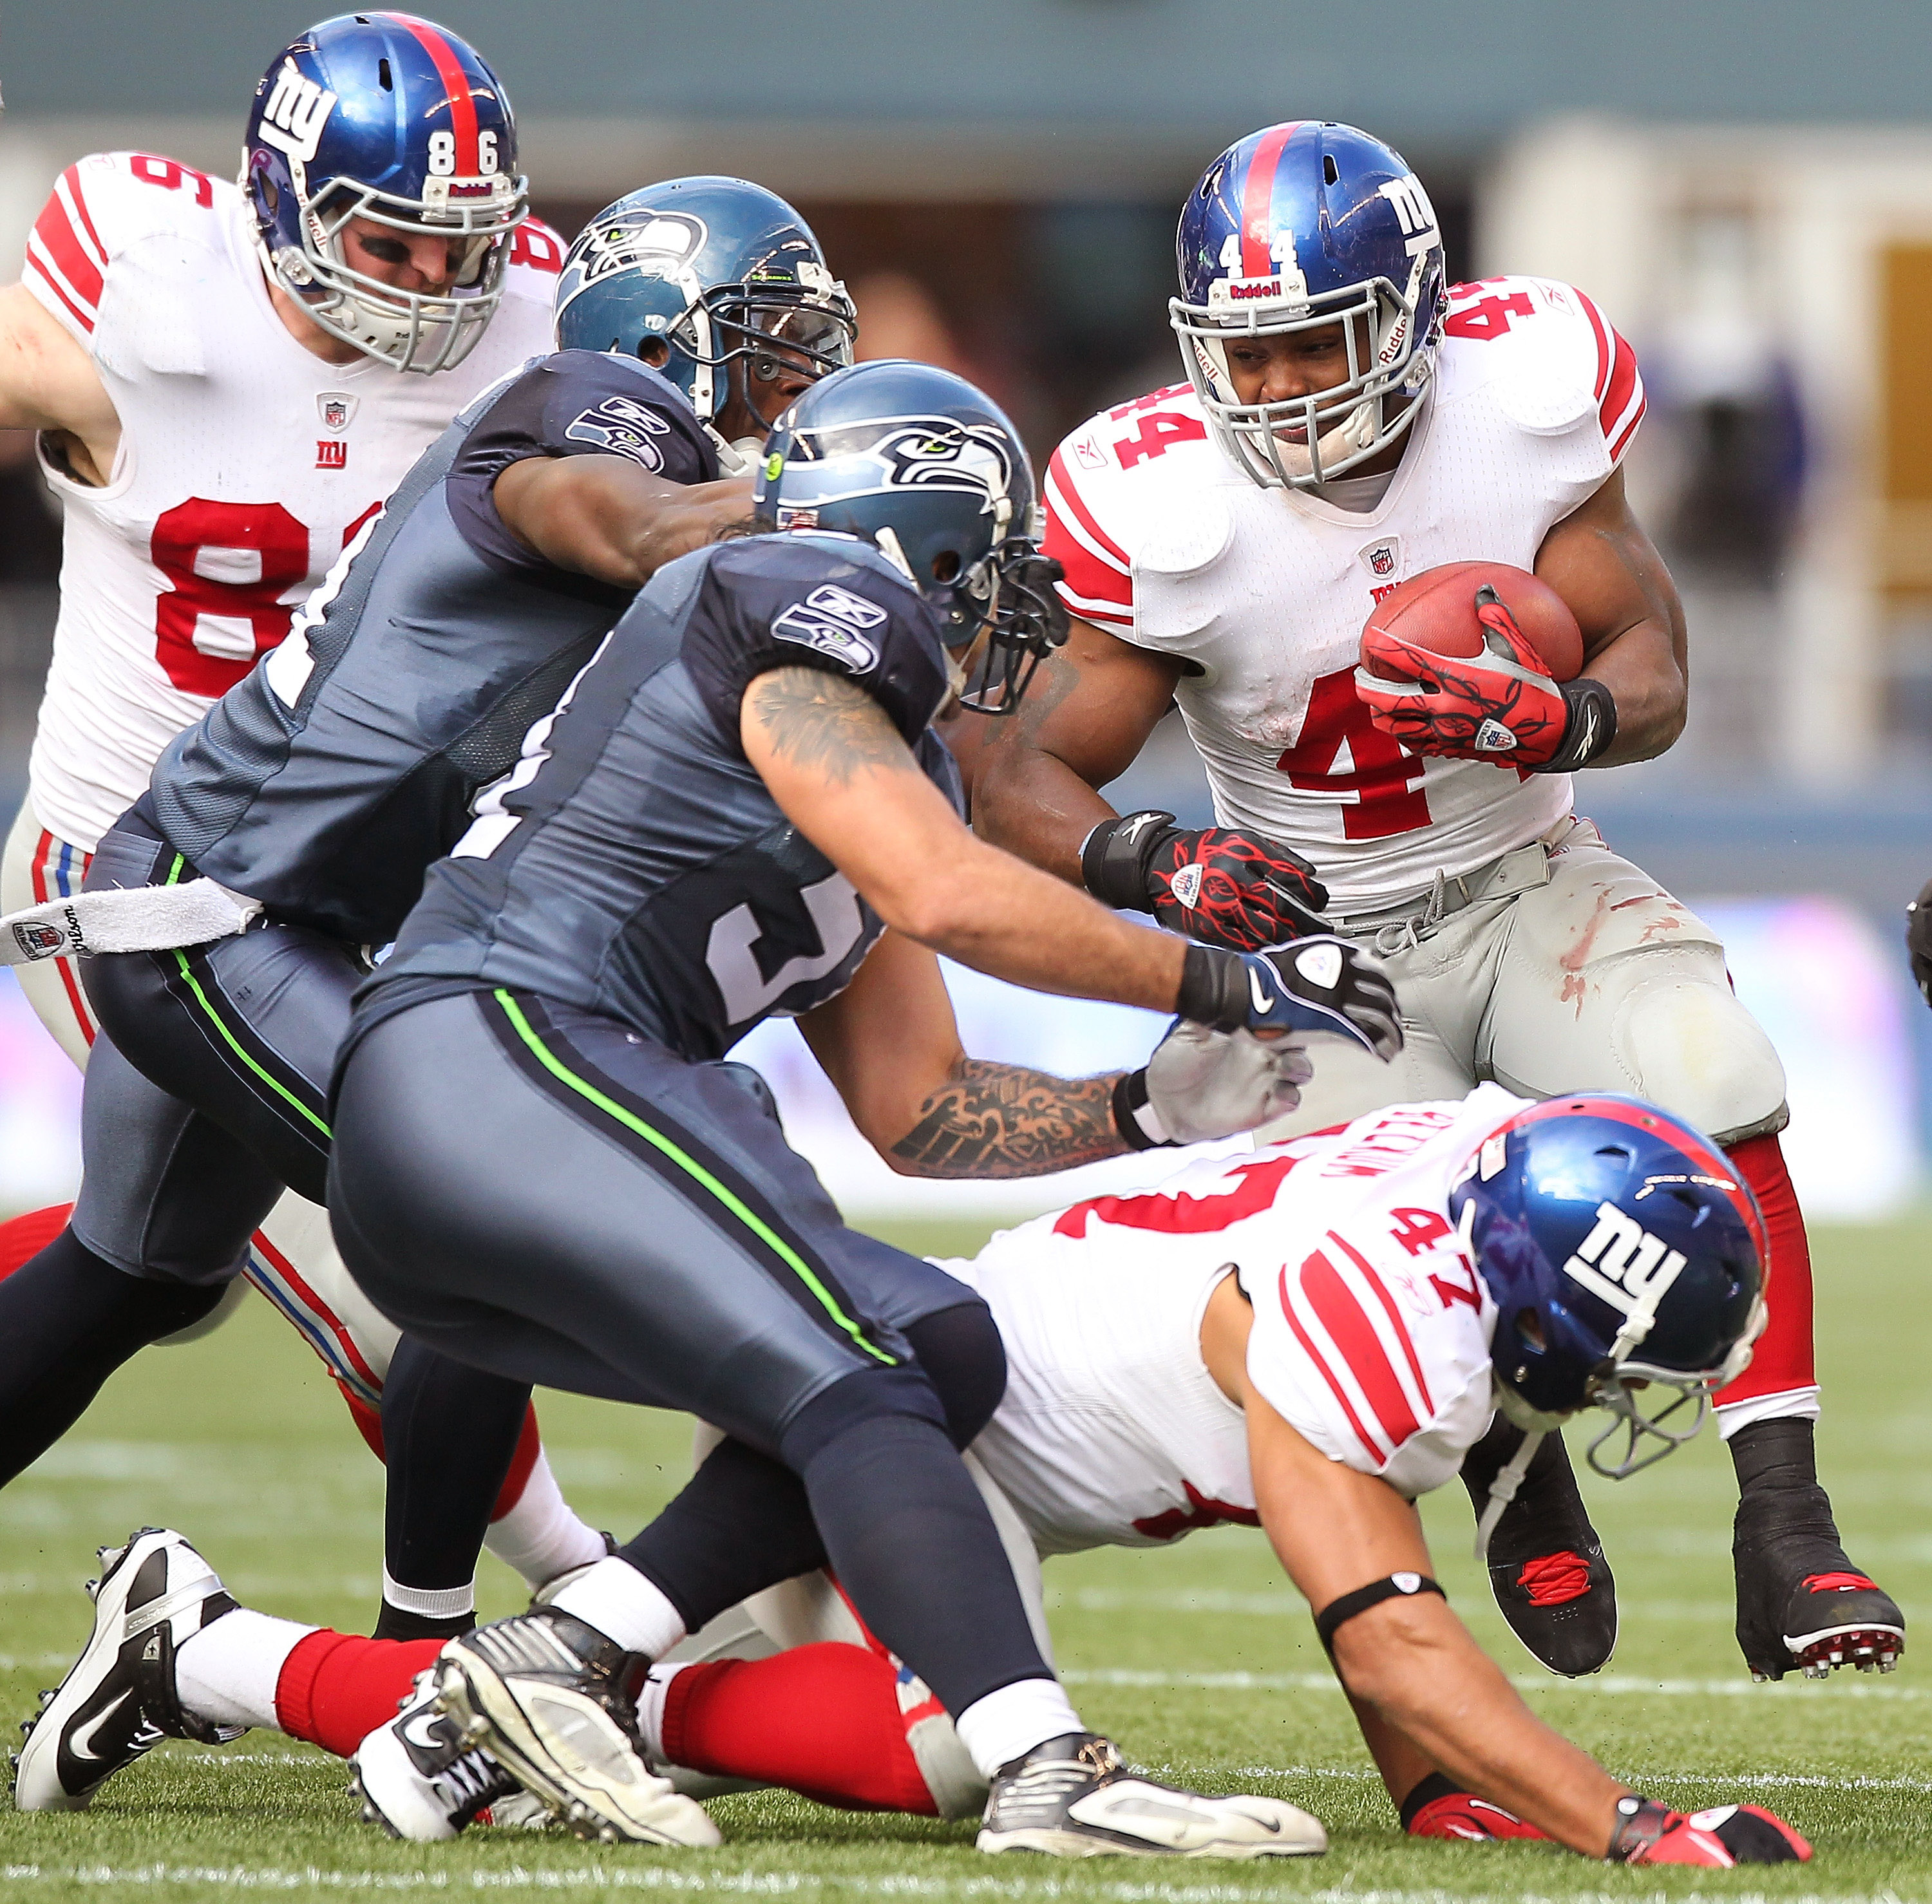 SEATTLE - NOVEMBER 07:  Running back Ahmad Bradshaw #44 of the New York Giants rushes against the Seattle Seahawks at Qwest Field on November 7, 2010 in Seattle, Washington. The Giants defeated the Seahawks 41-7. (Photo by Otto Greule Jr/Getty Images)